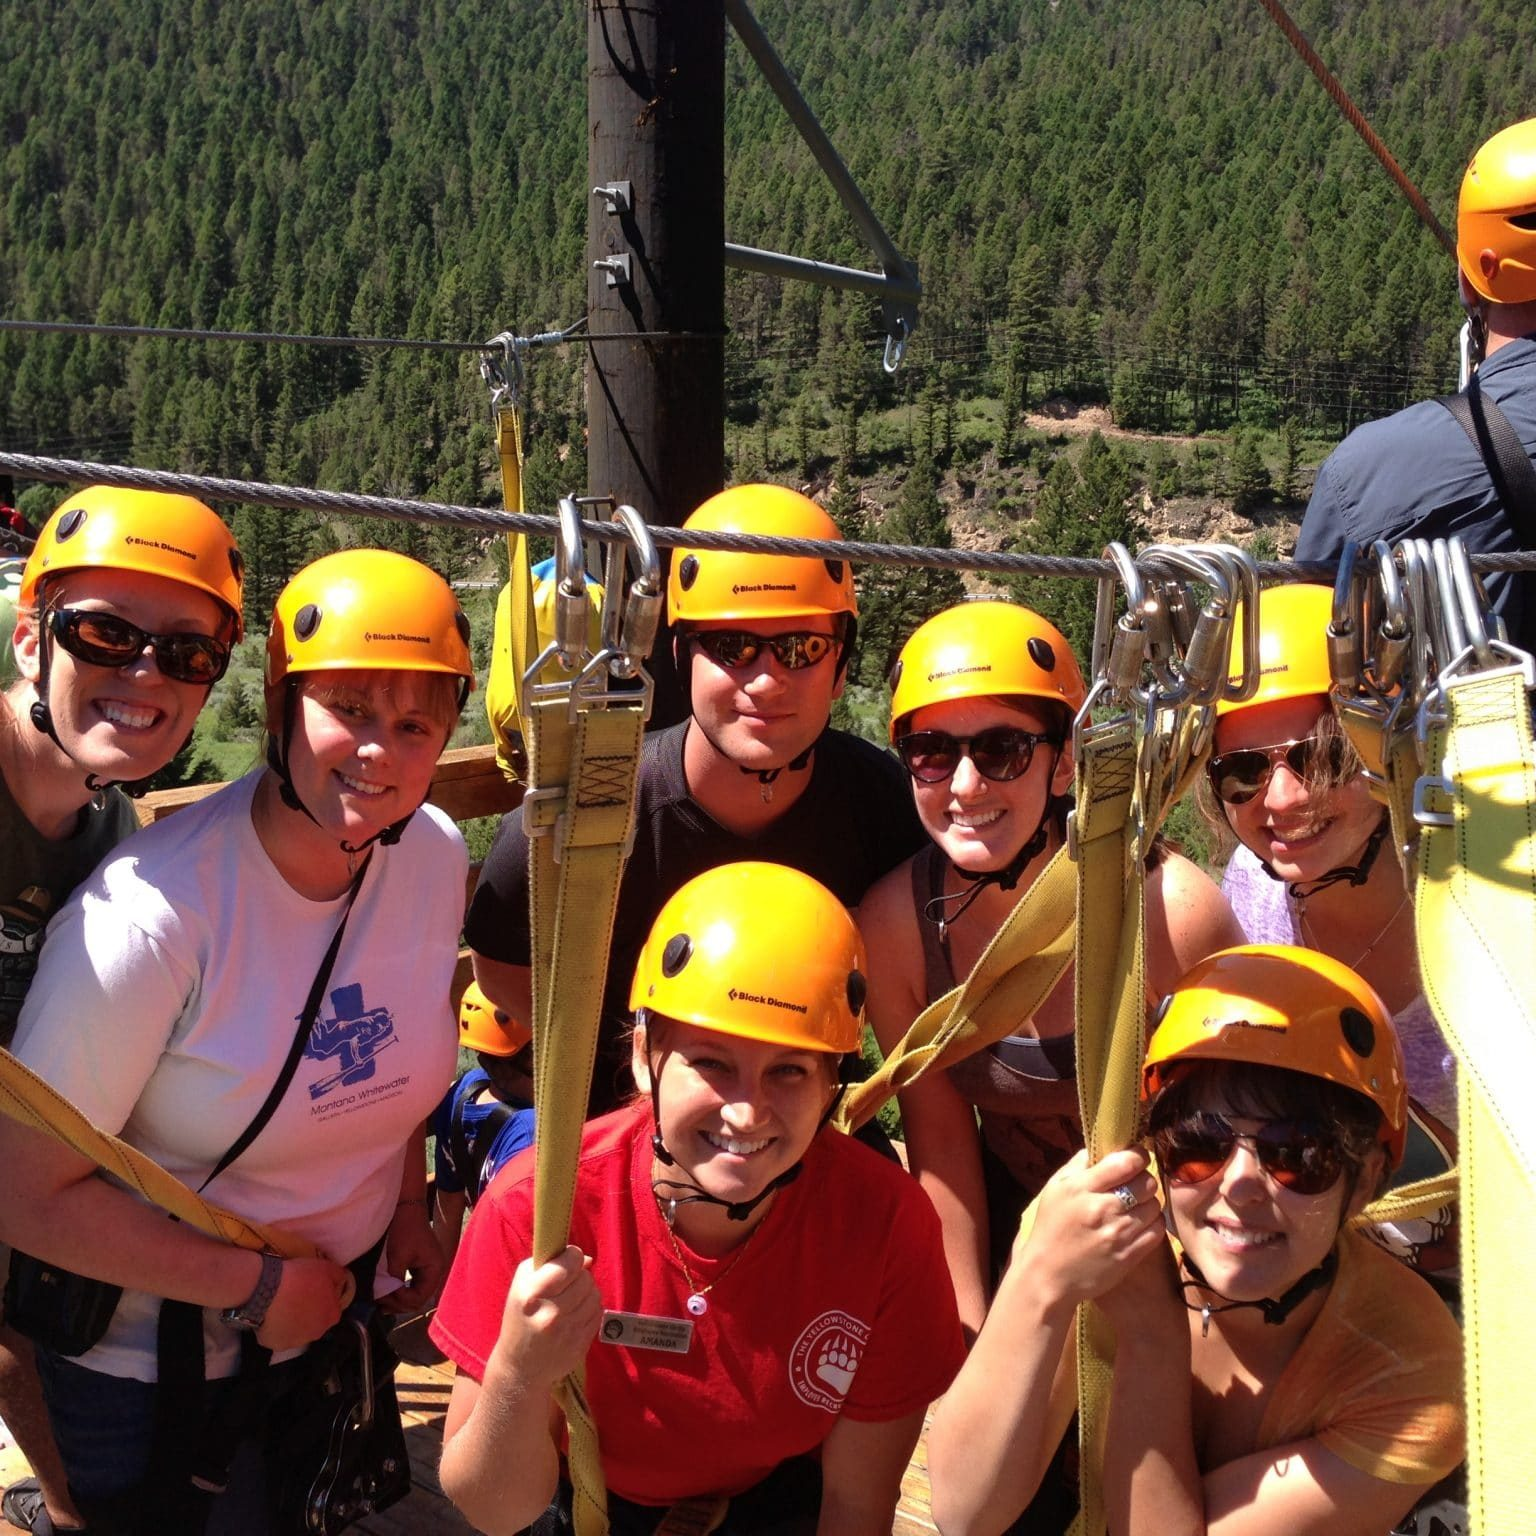 Ziplining trips sling participants through Big Sky Country